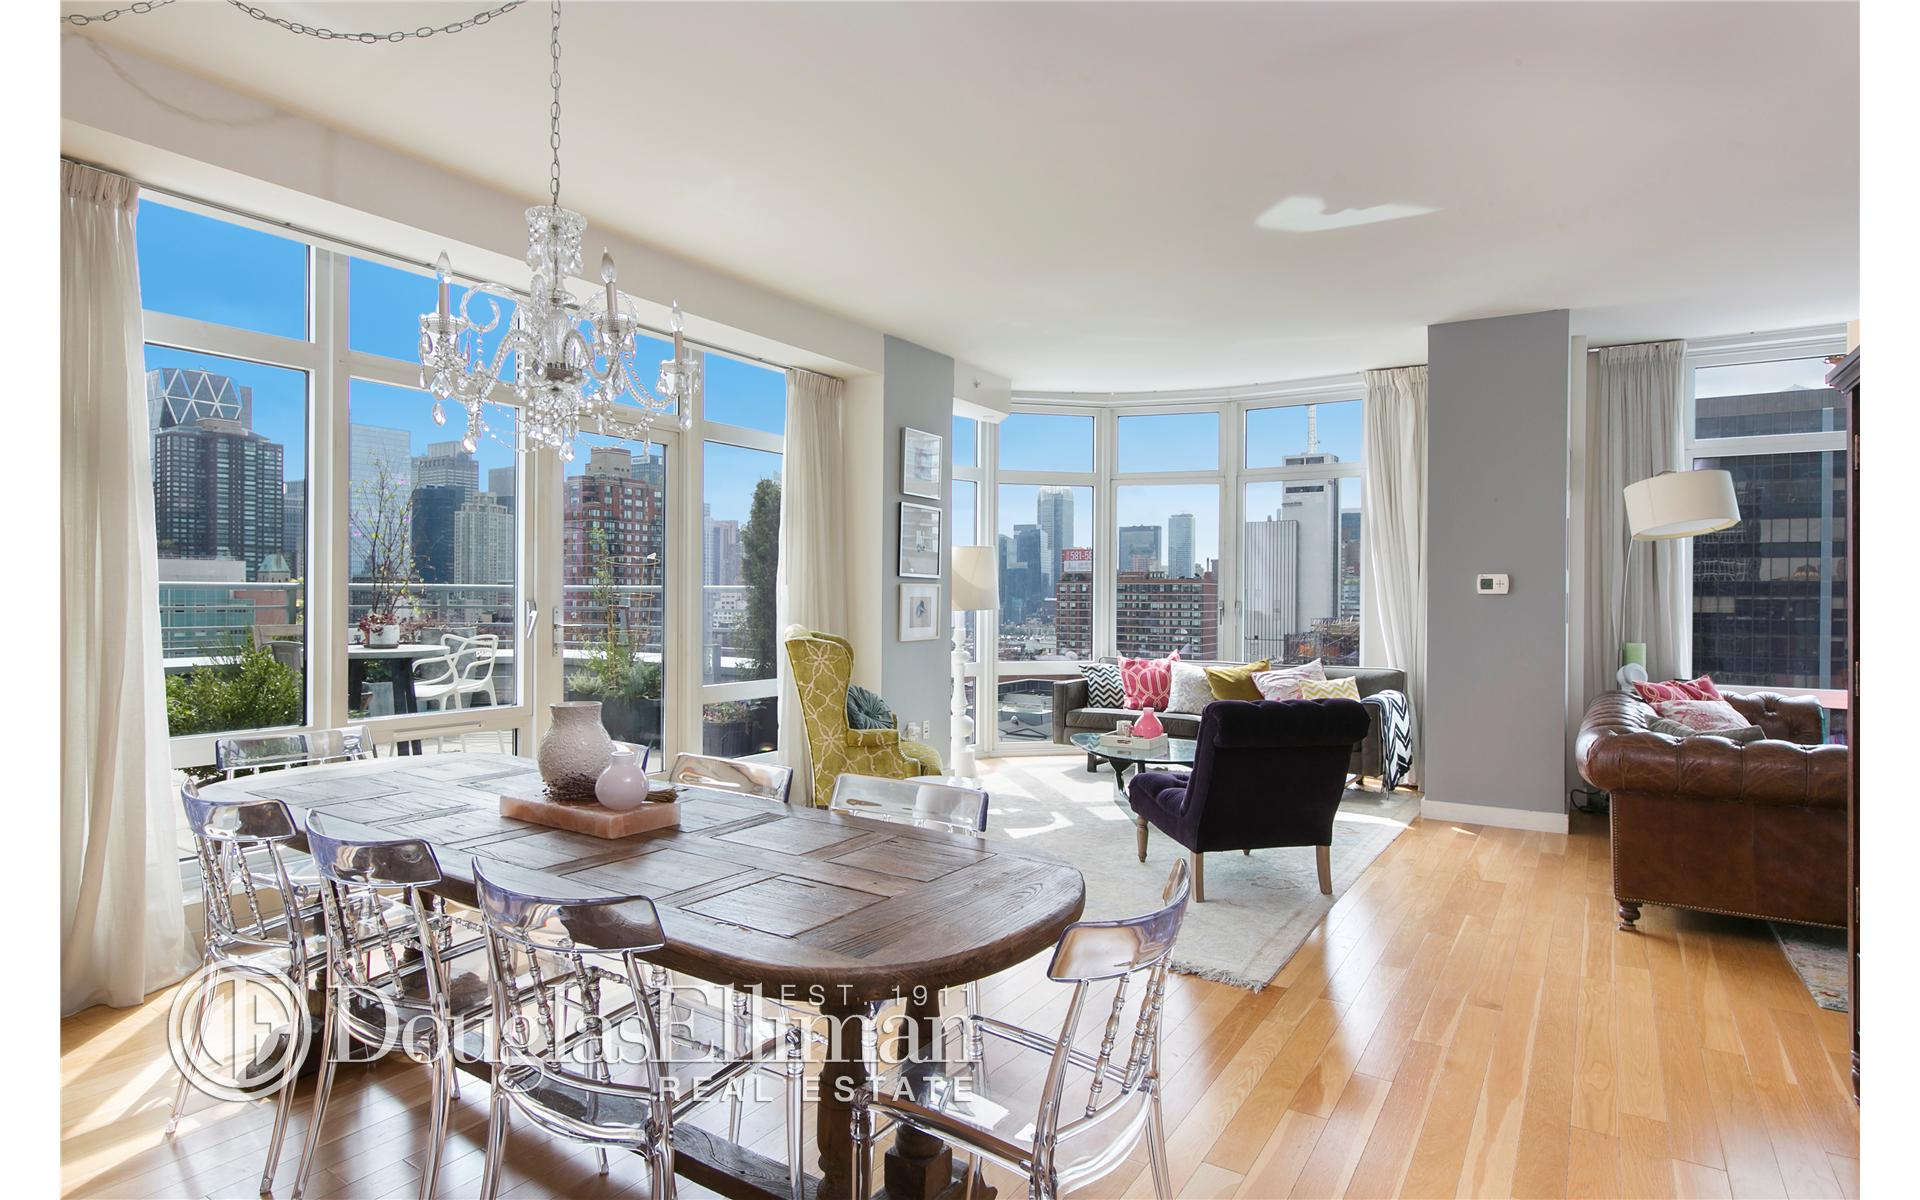 Condominium for Sale at 555 West 59th Street New York, New York 10019 United States